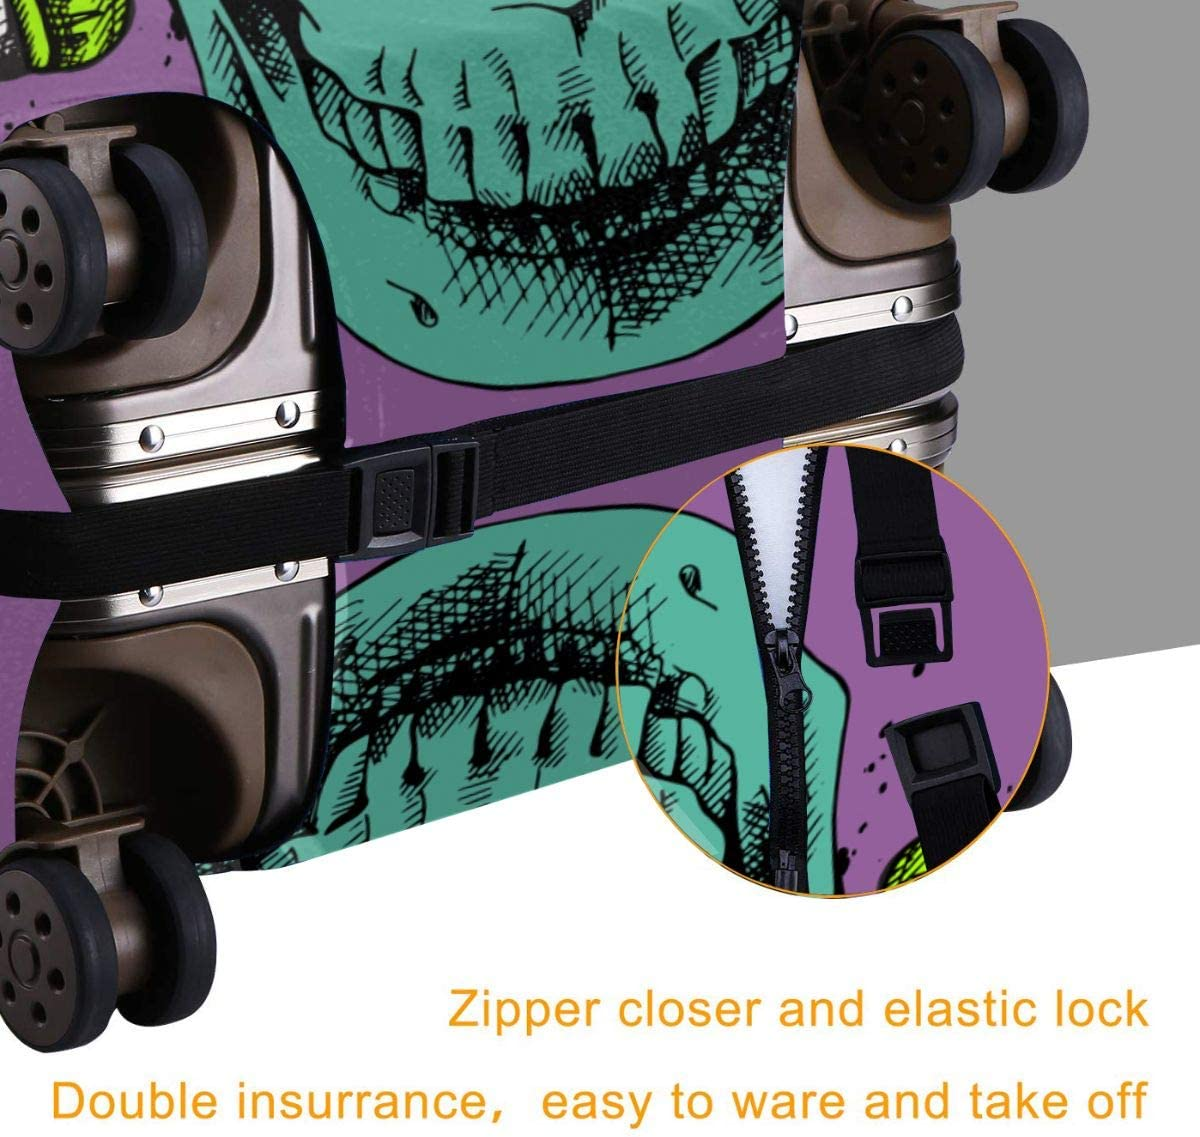 Skull Wearing Headphones and Glasses3 XL Luggage Covers Travel Luggage Cover Spandex Travel Luggage Cover Suitcase Protector Fits 18-32 Inch Luggage Case